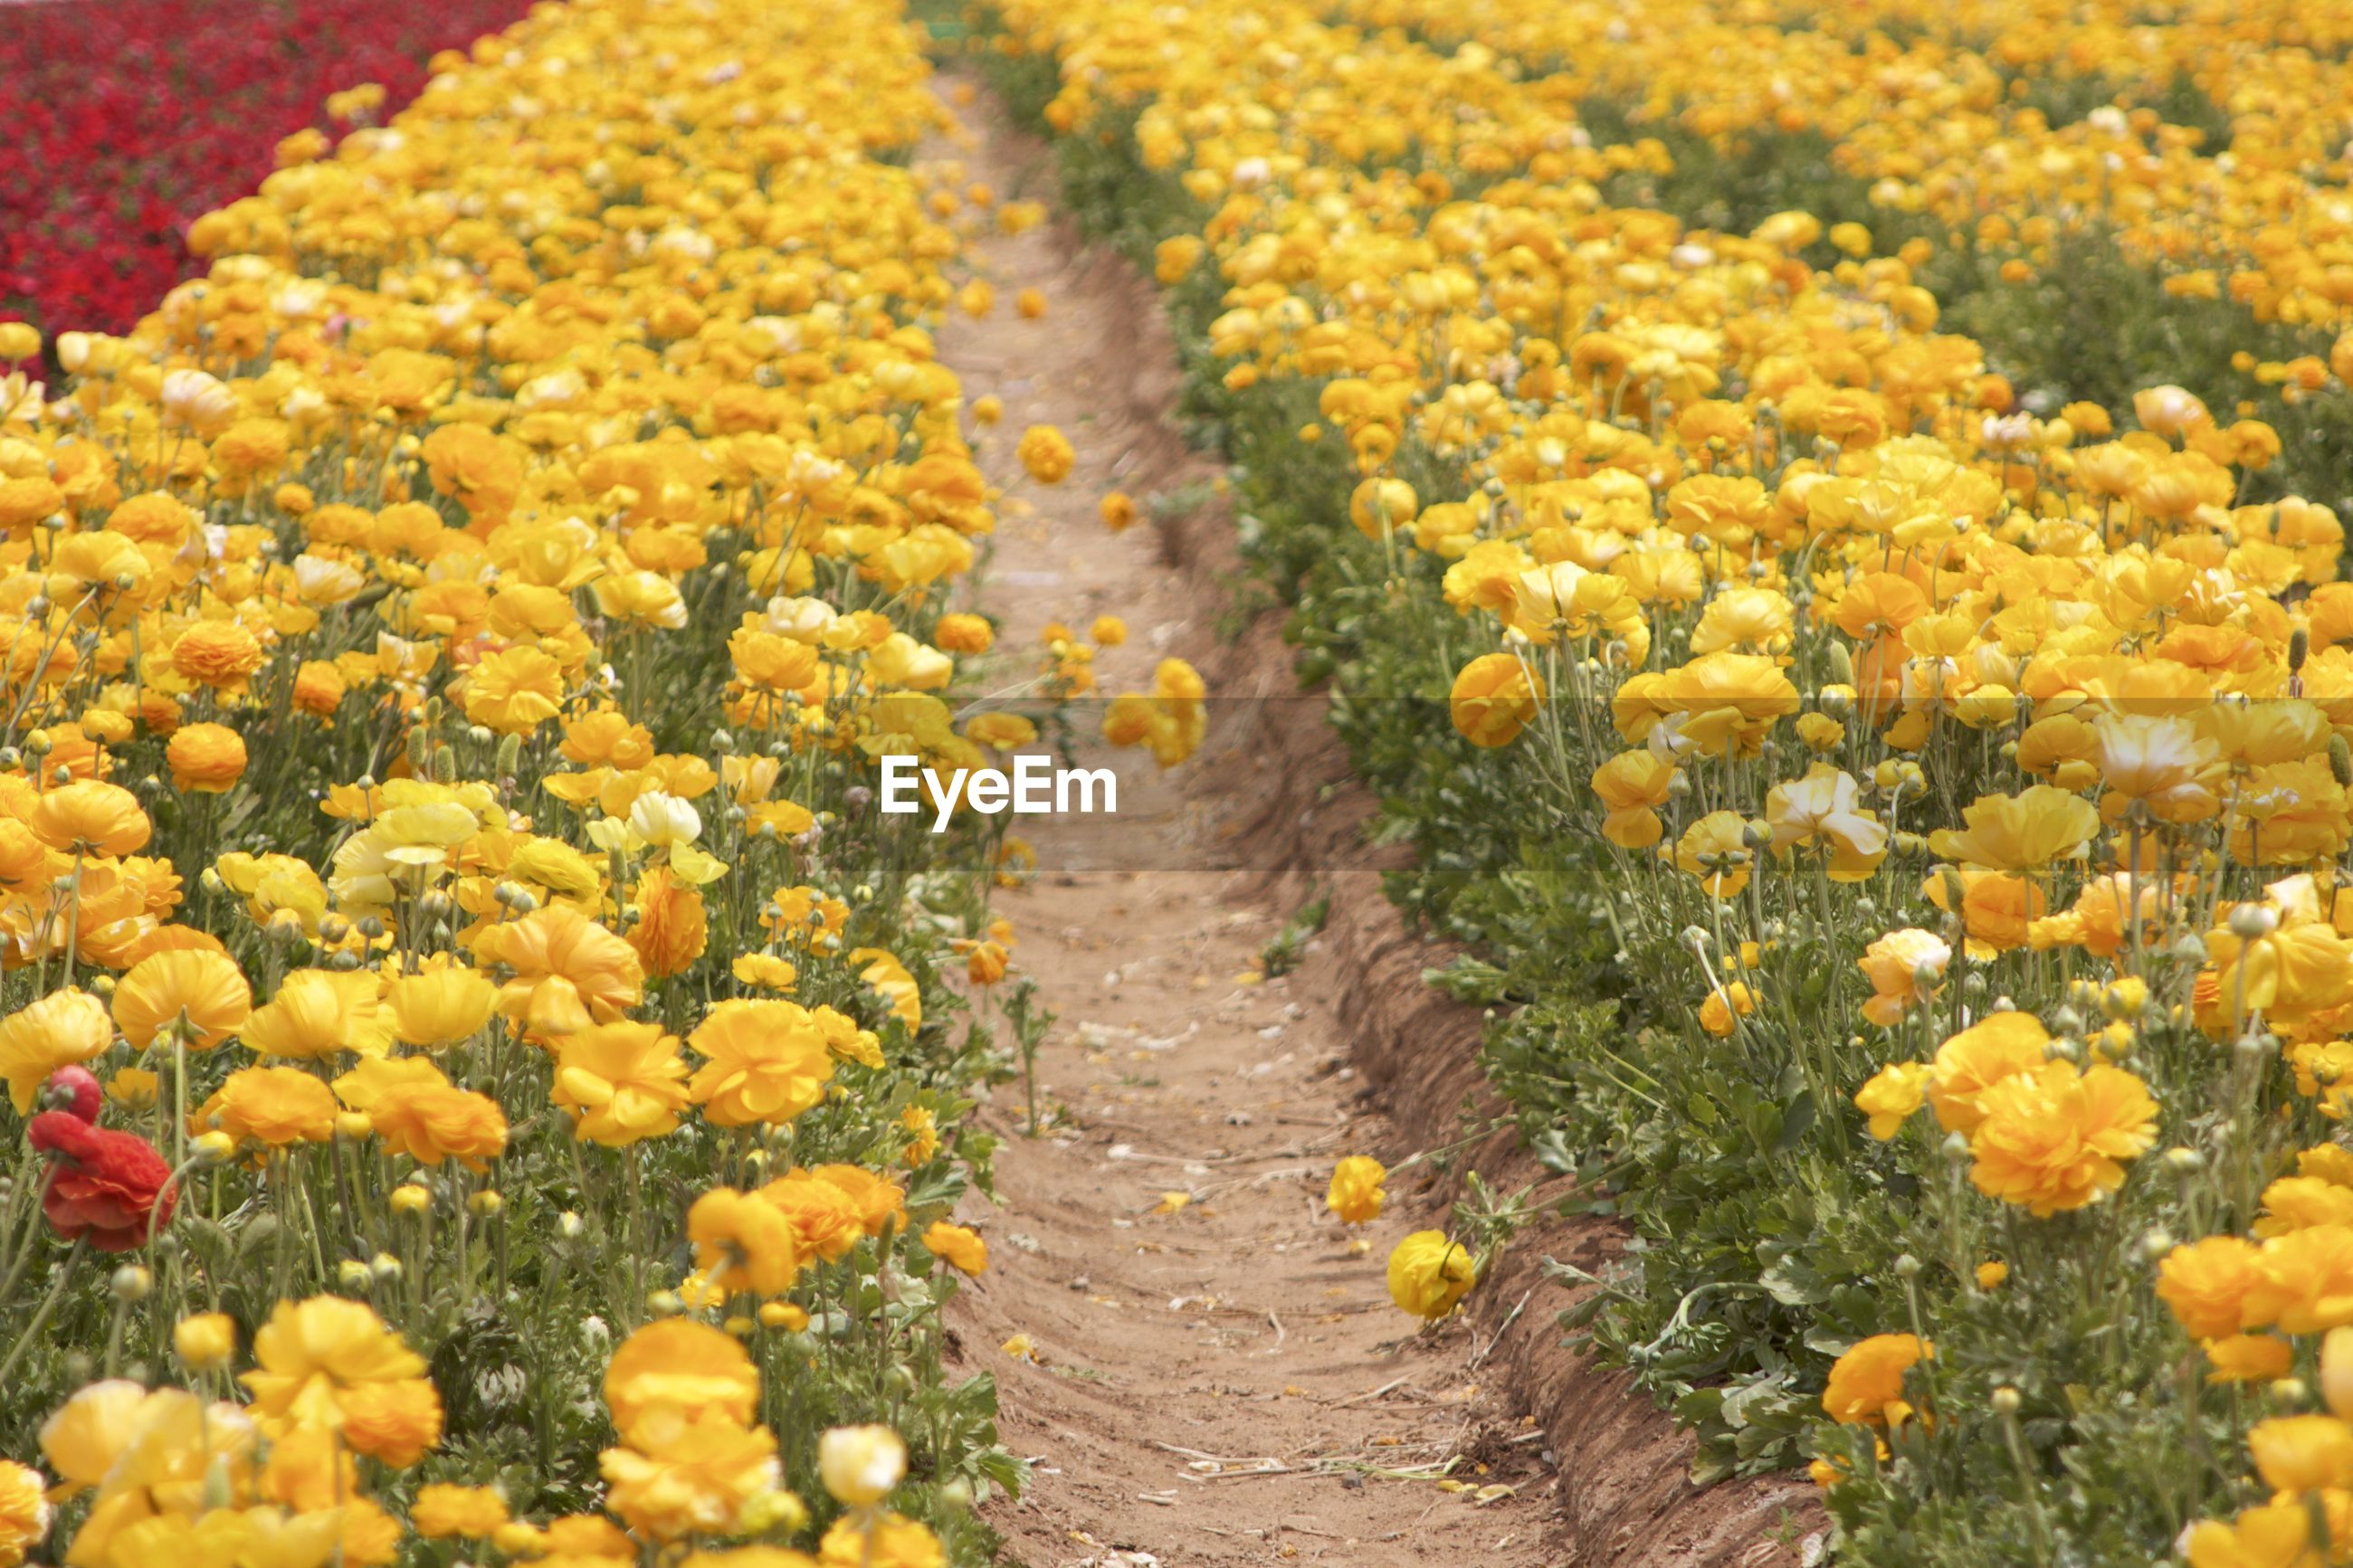 View of yellow flowering plants in field